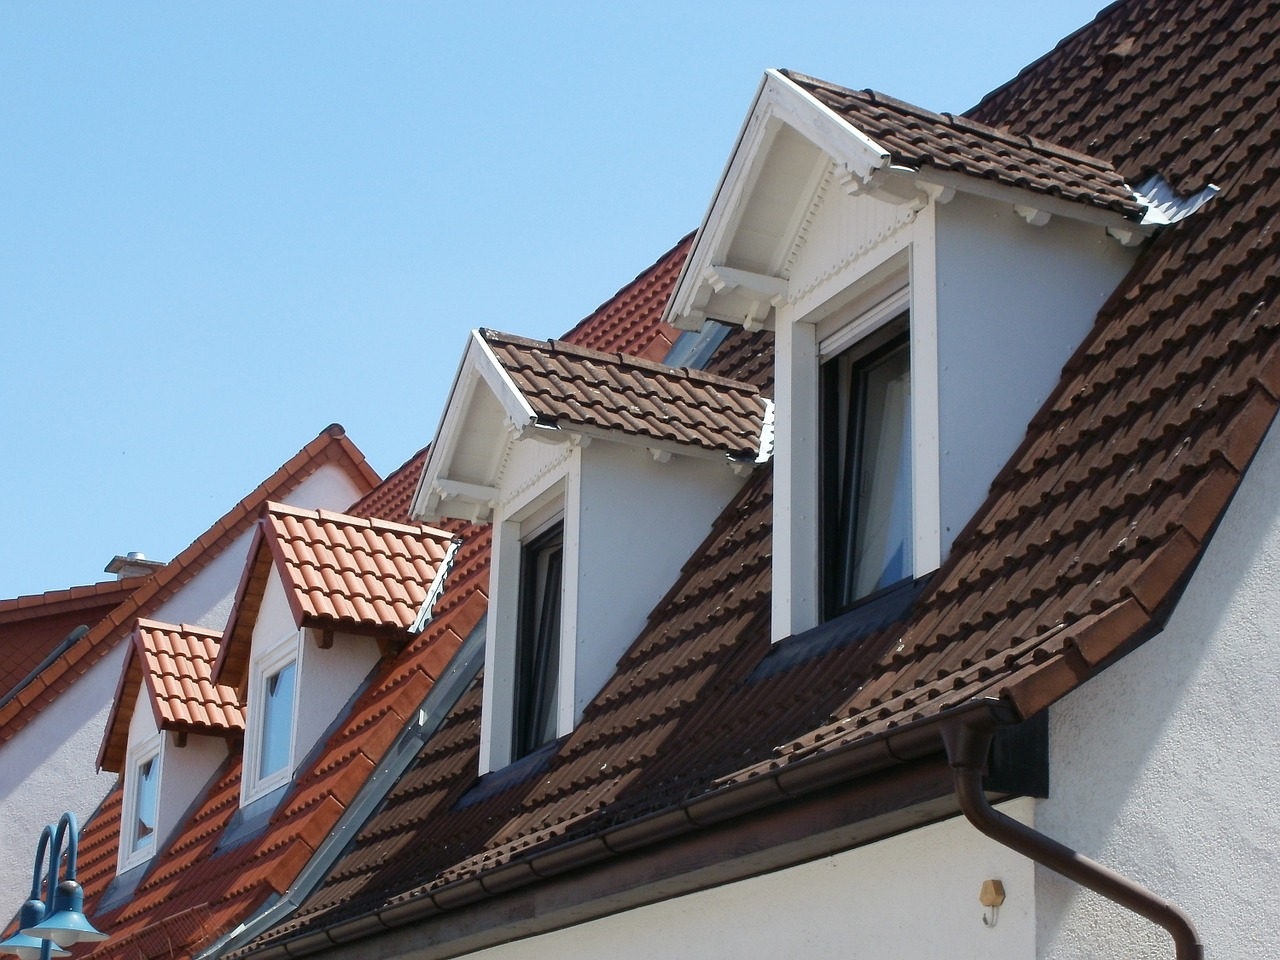 5 Reasons to Keep Your Roof Clean Year-Round